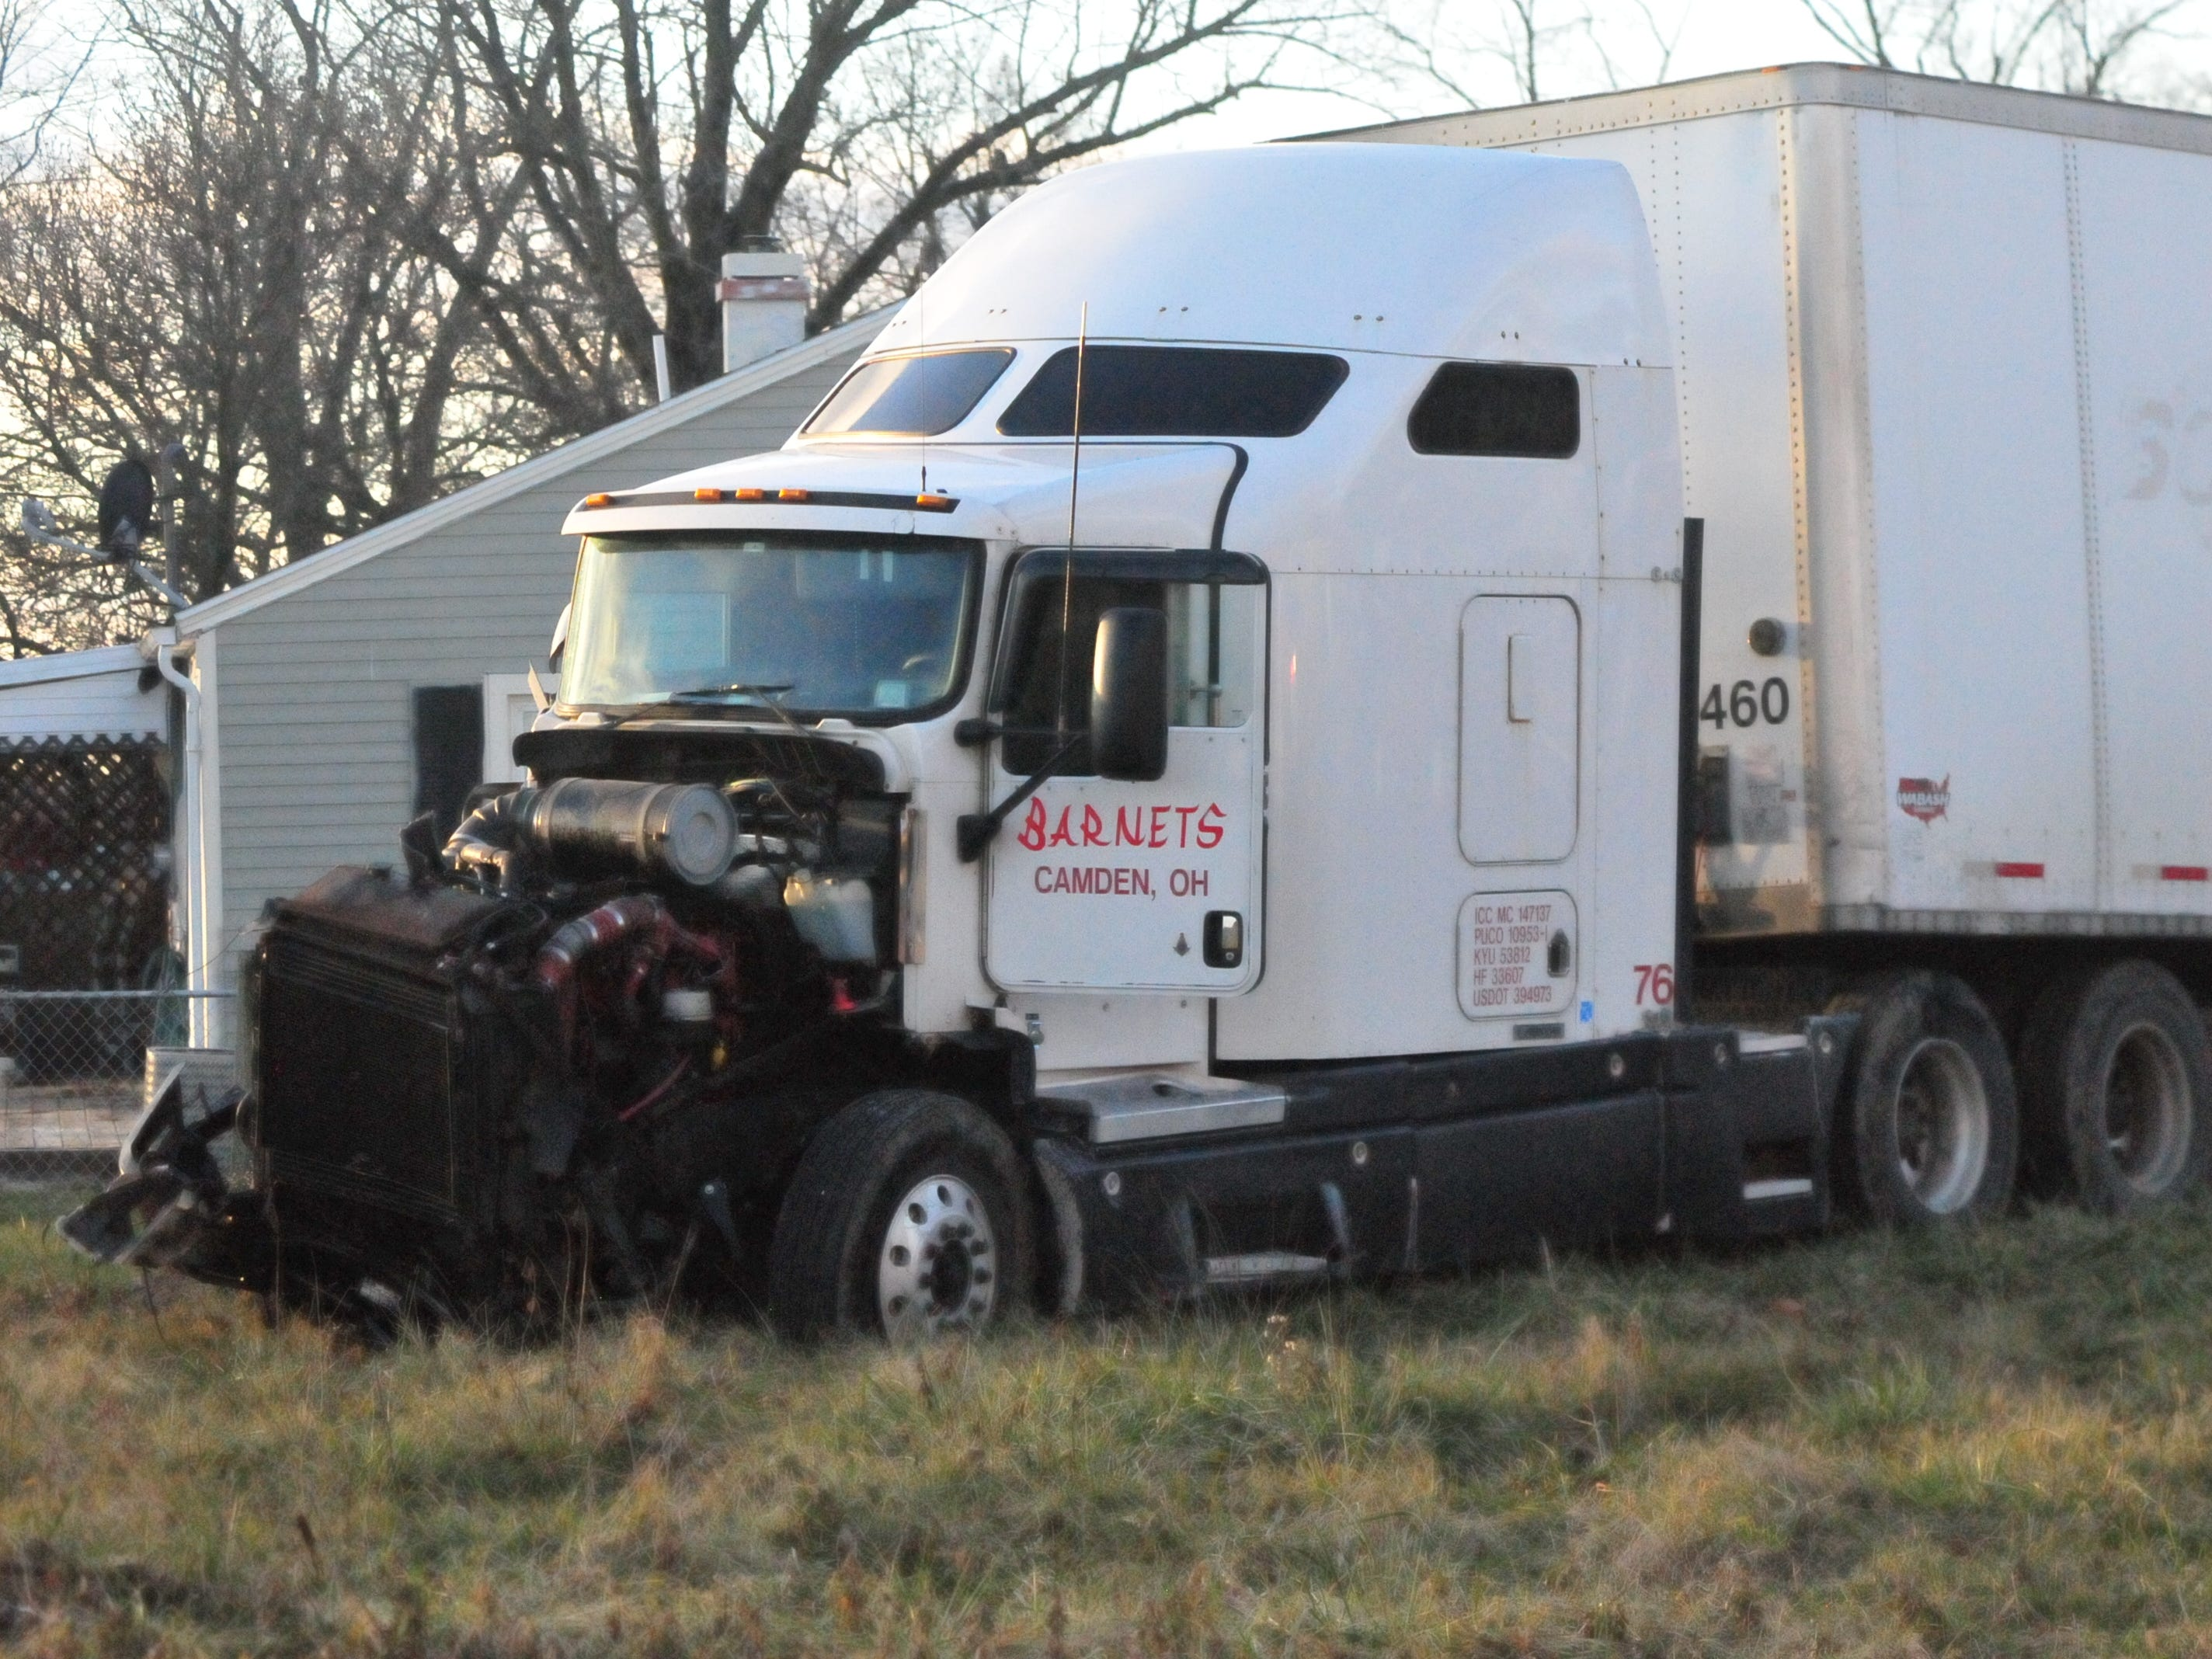 A semi tractor-trailer was involved in a Monday afternoon accident on U.S. 35 north of Salisbury Road.